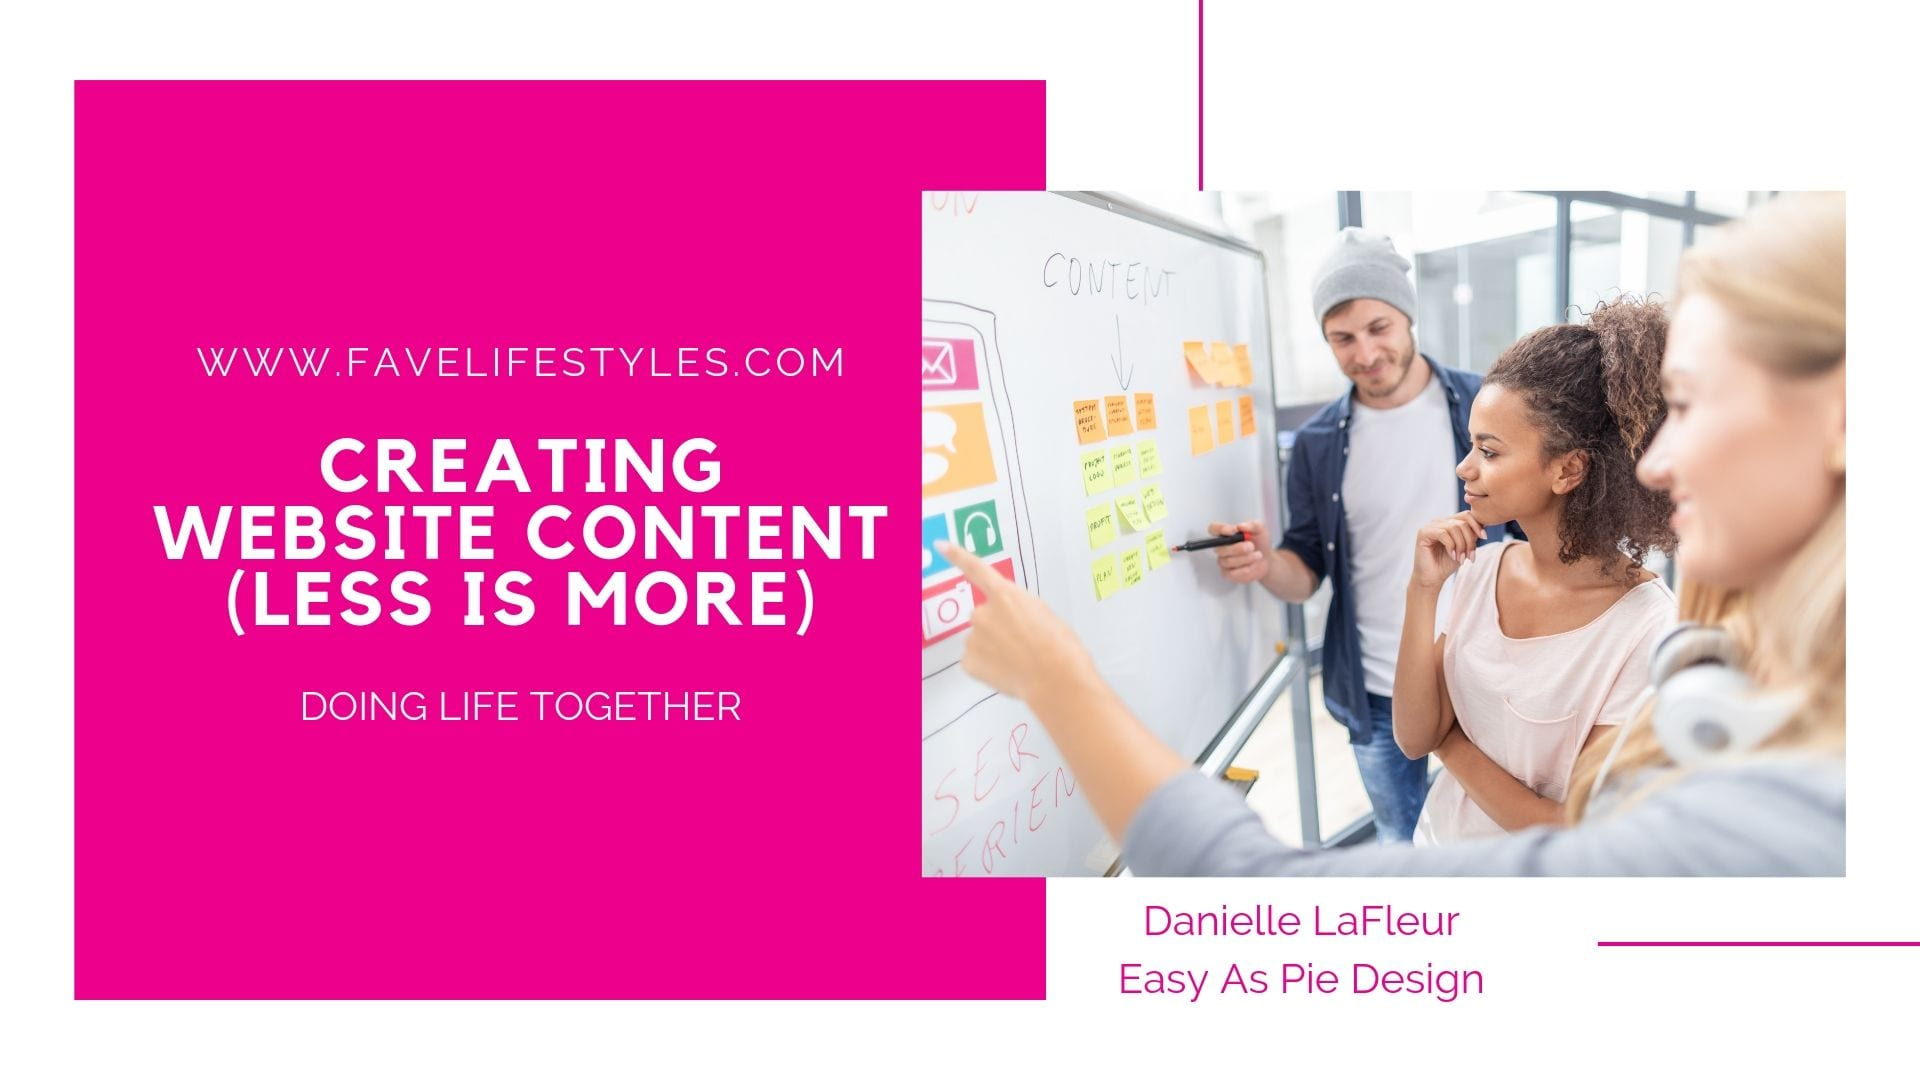 Creating Website Content (Less is More)